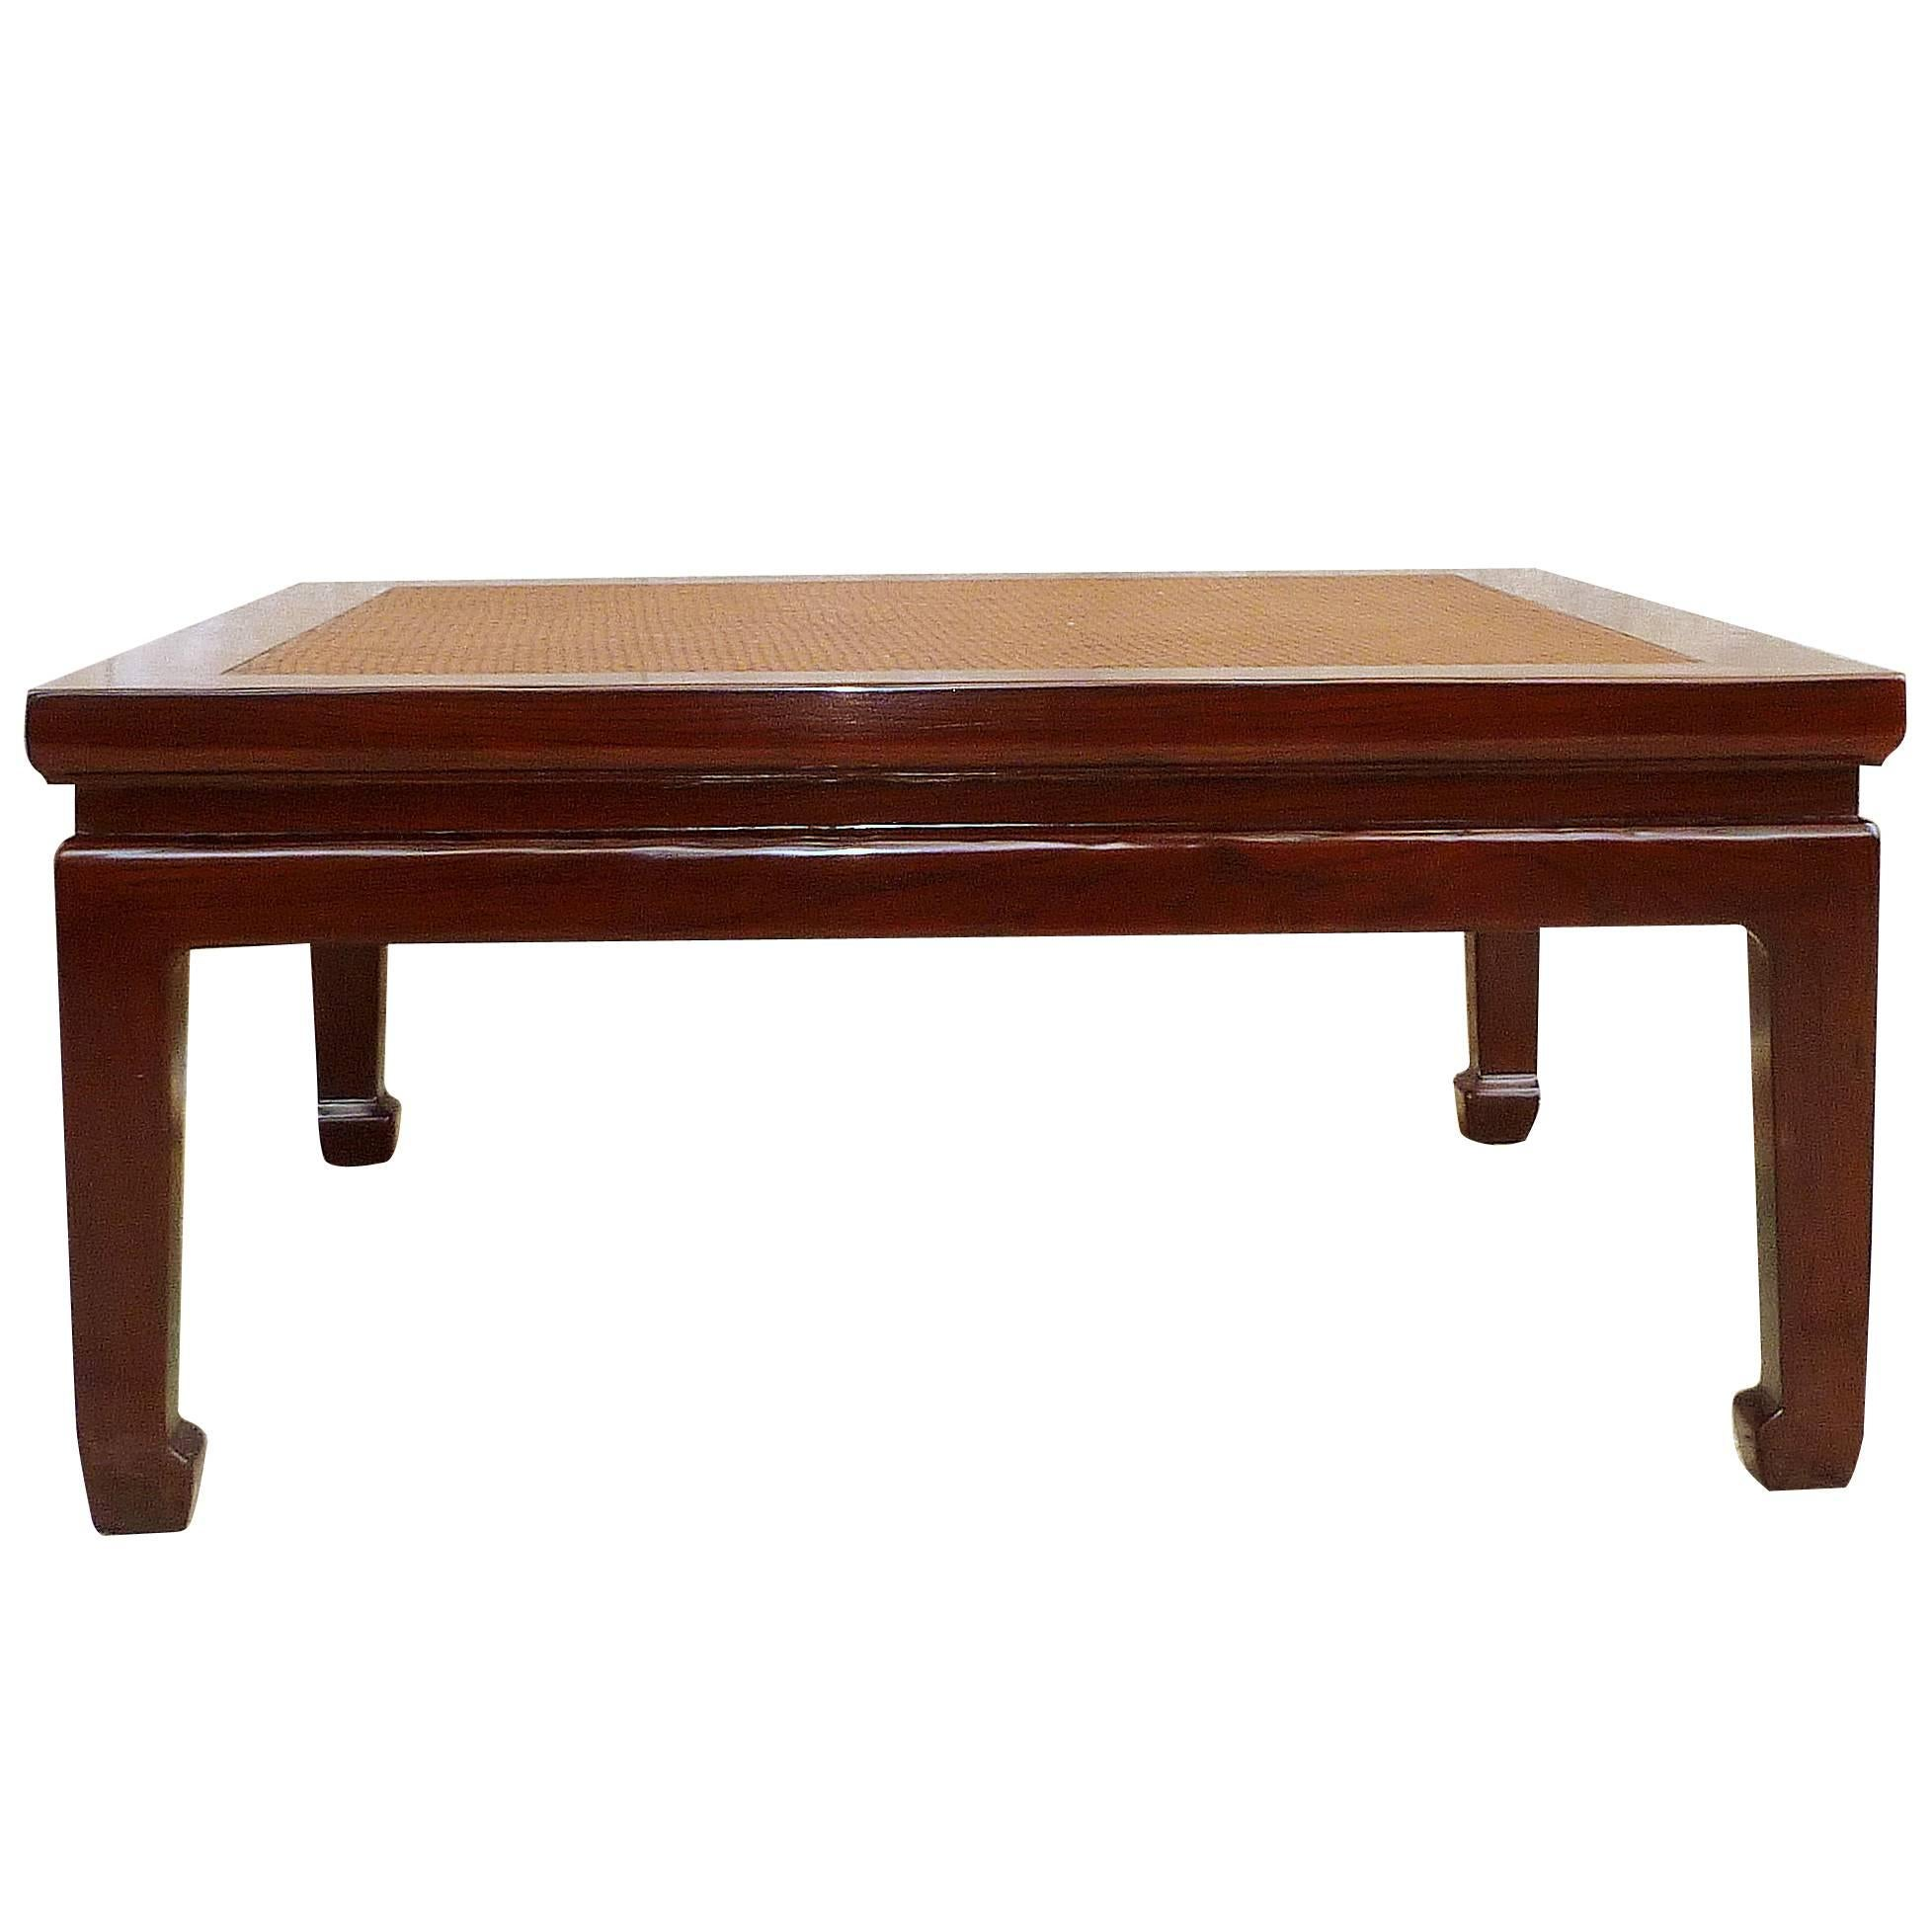 Fine Jumu Wood Low Table with Canned Top